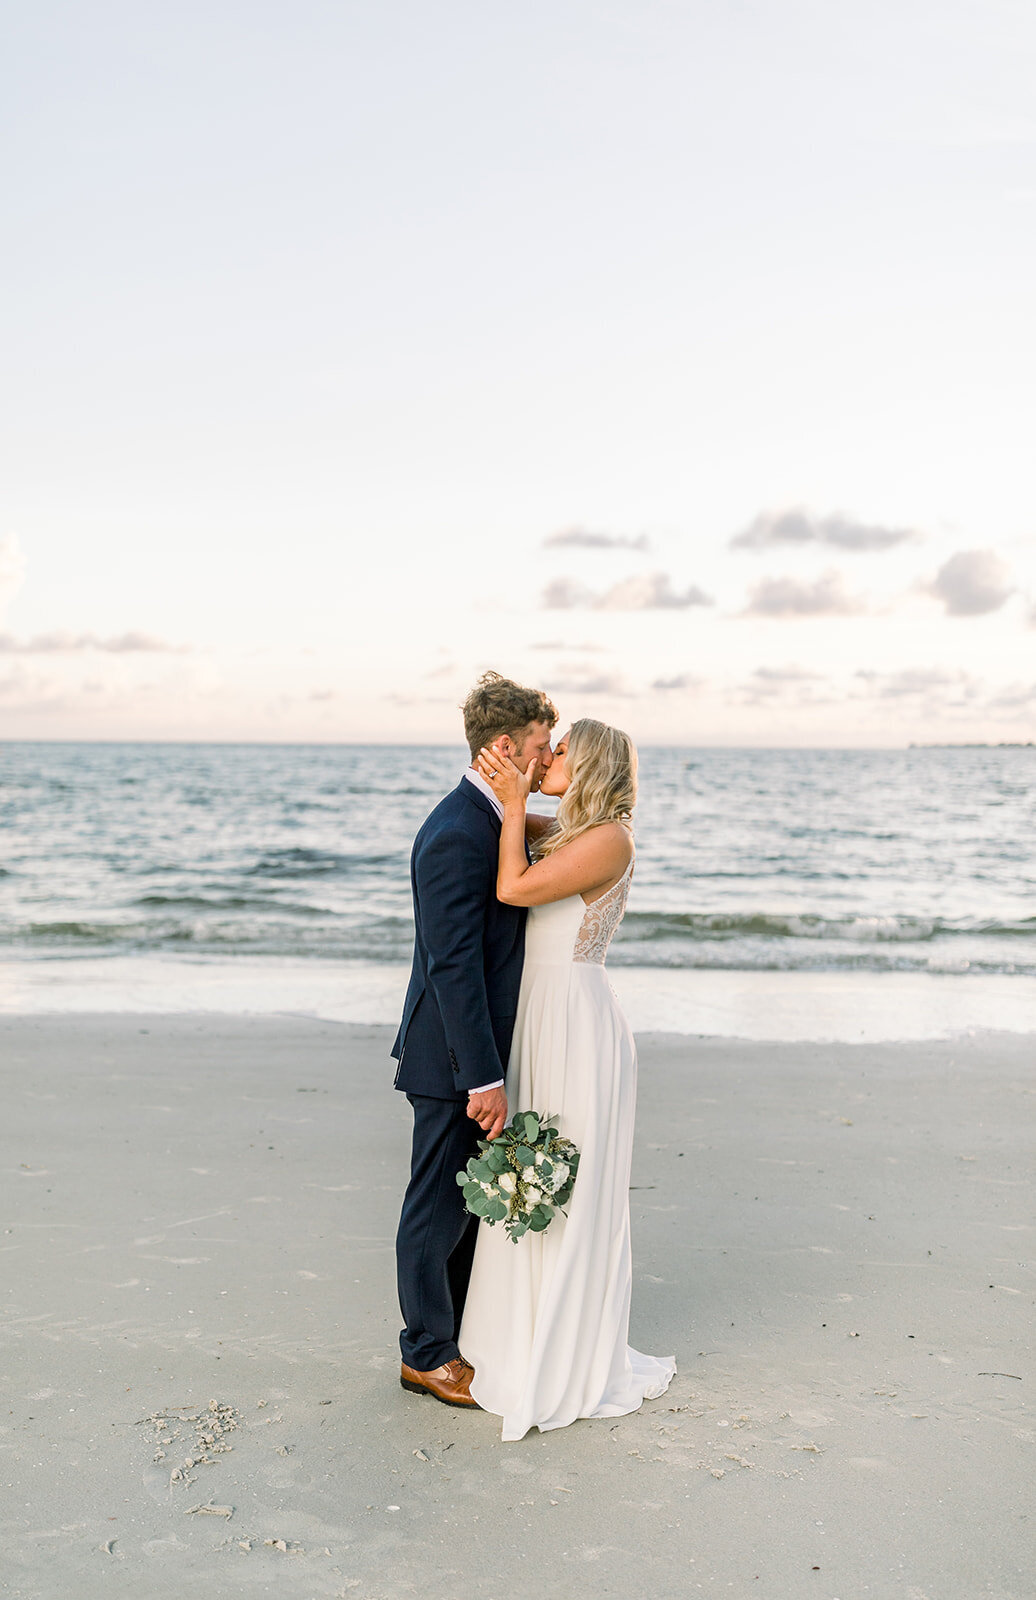 alex-mike-bowditch-beach-fort-myers-wedding-photos-1348